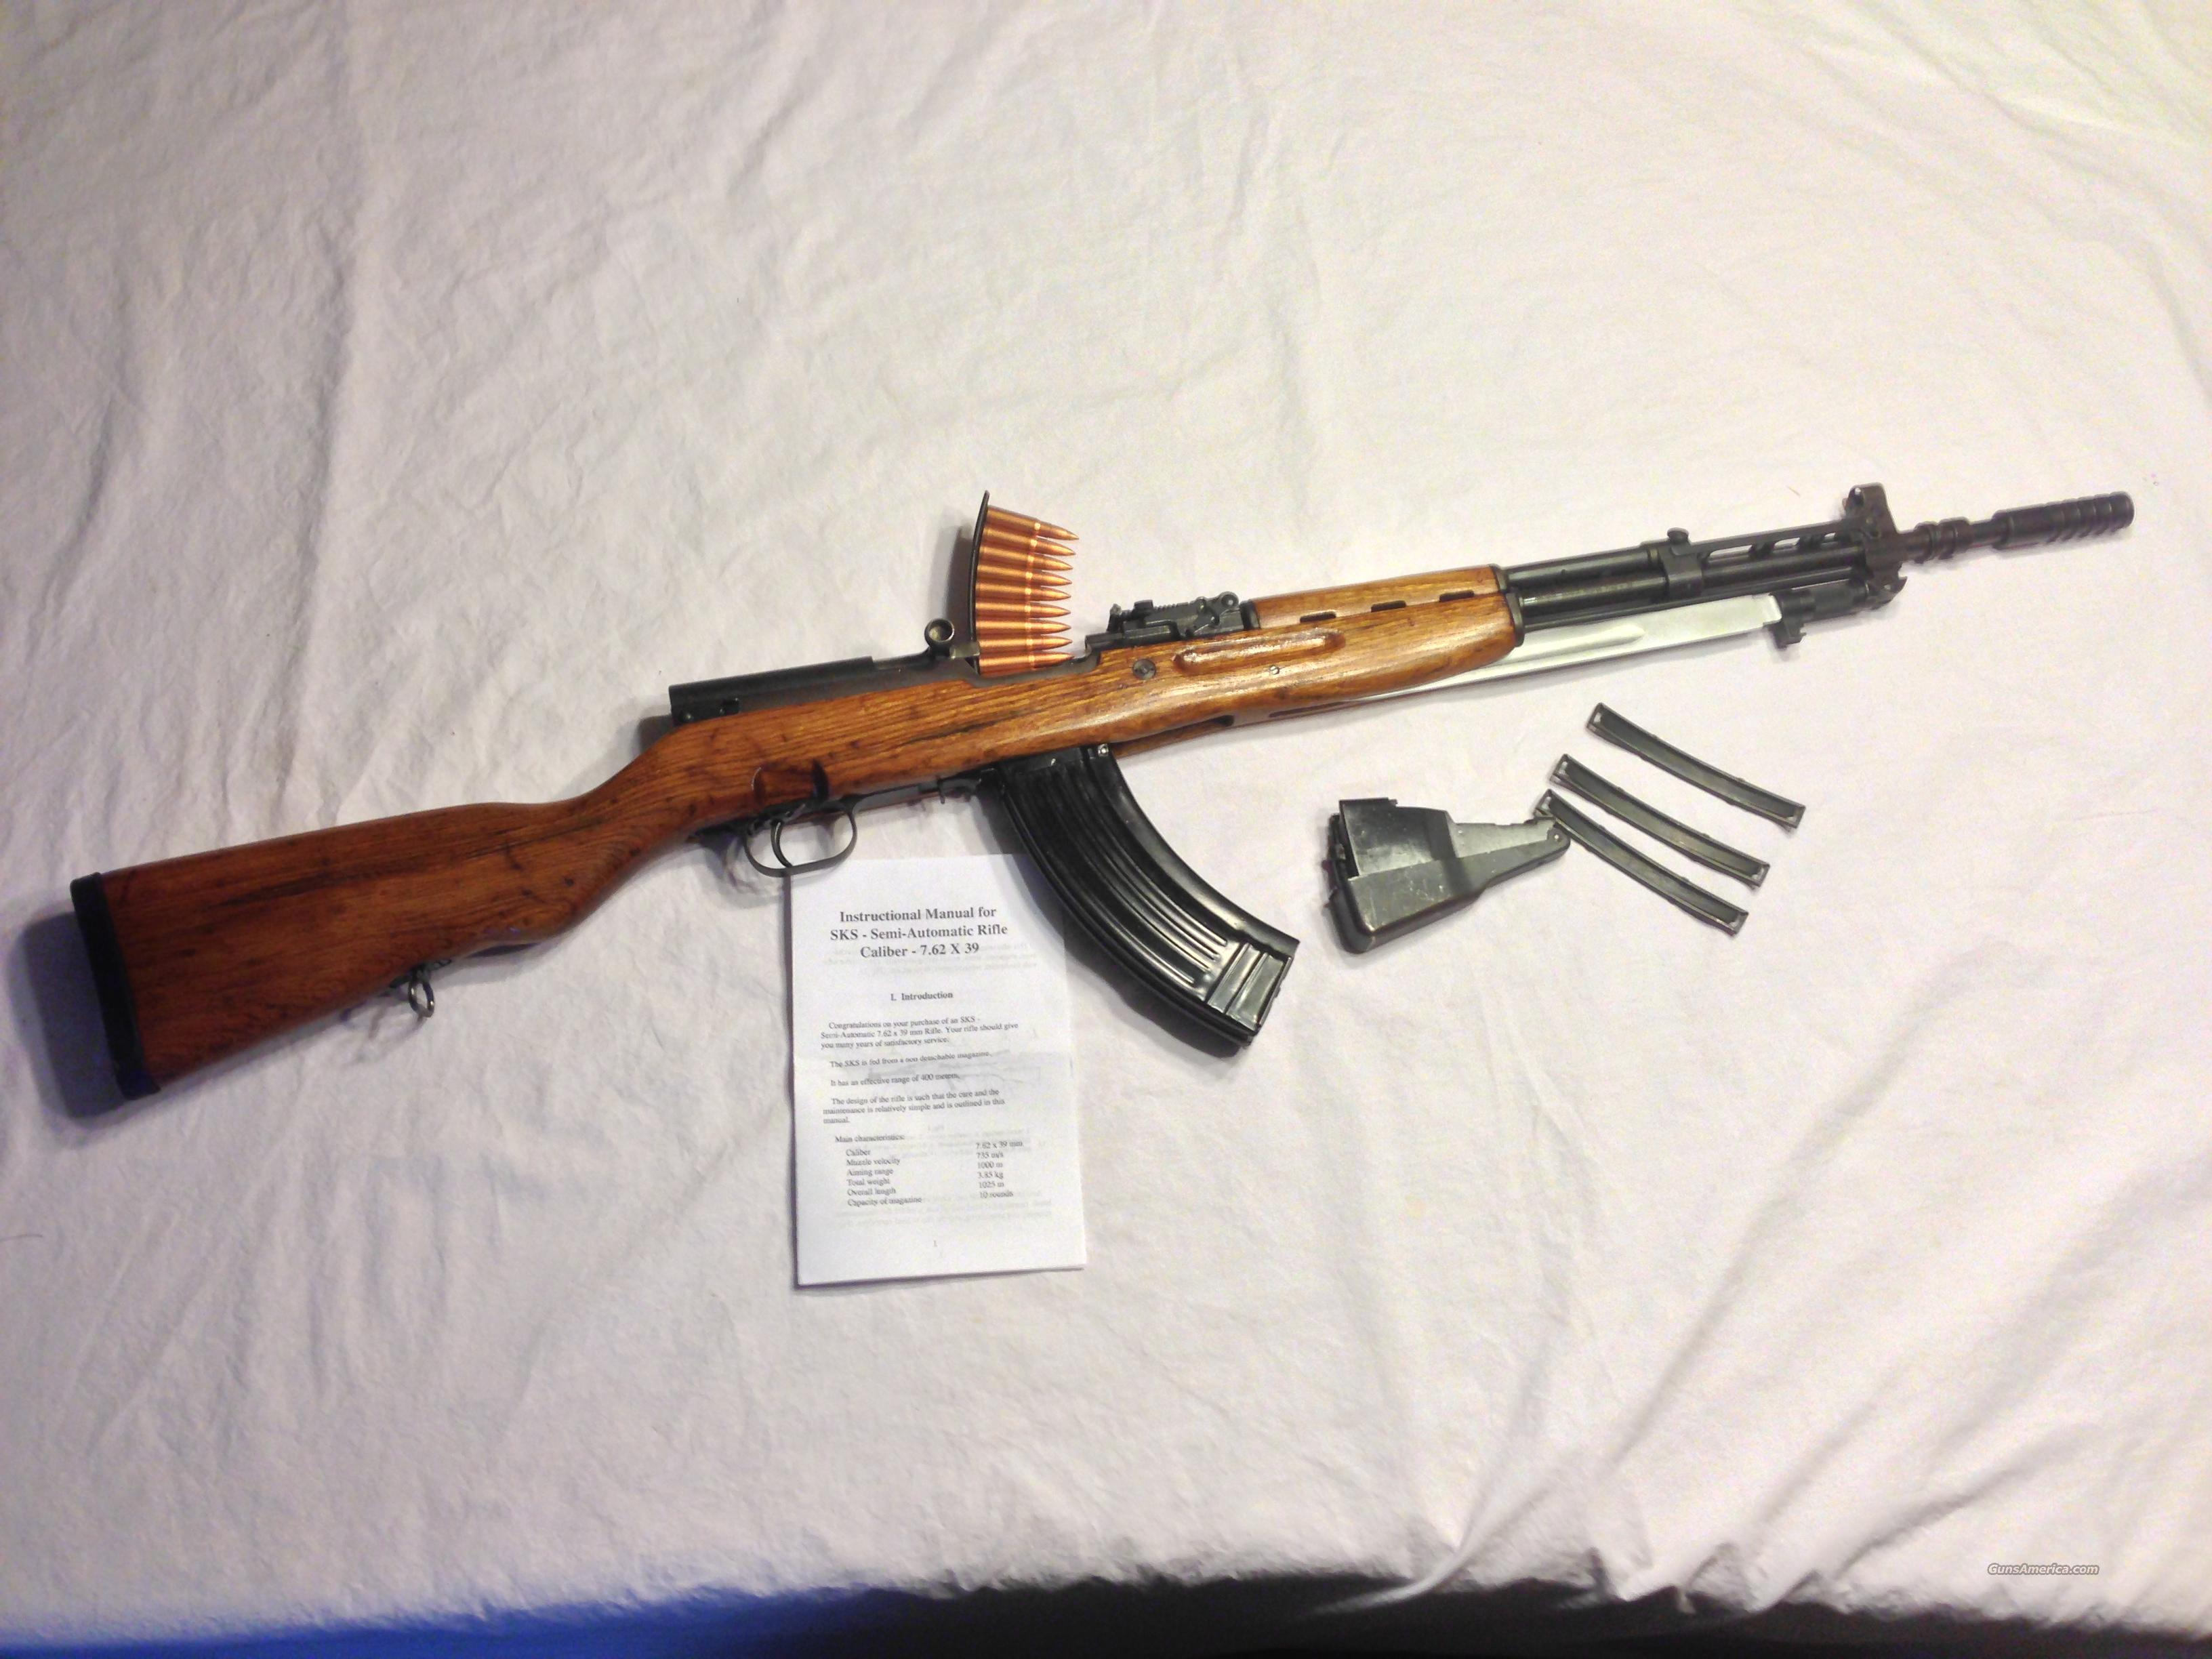 Refinished Yugo SKS 59/66 w/Grenade Launcher wi for sale